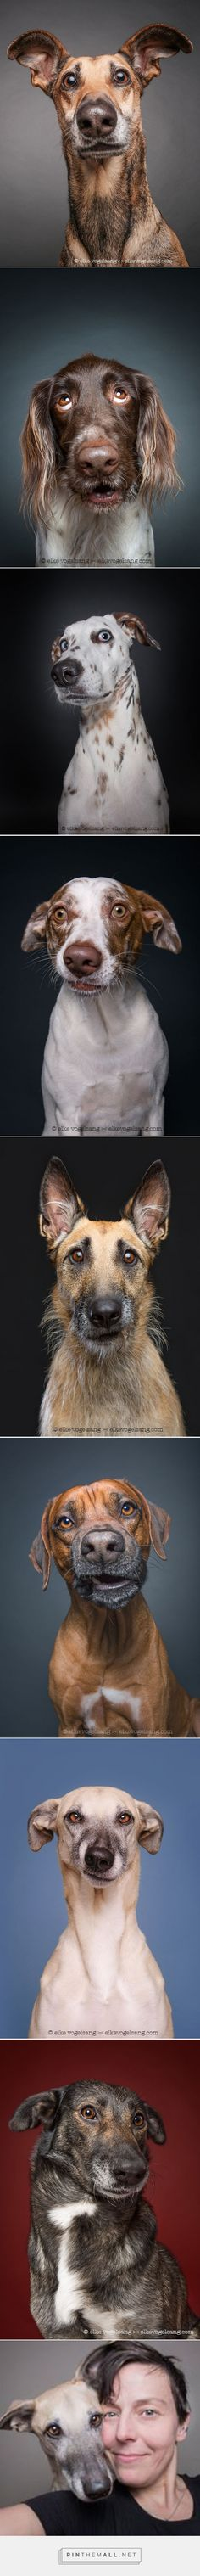 Dogs Questioning The Photographer's Sanity | Bored Panda...